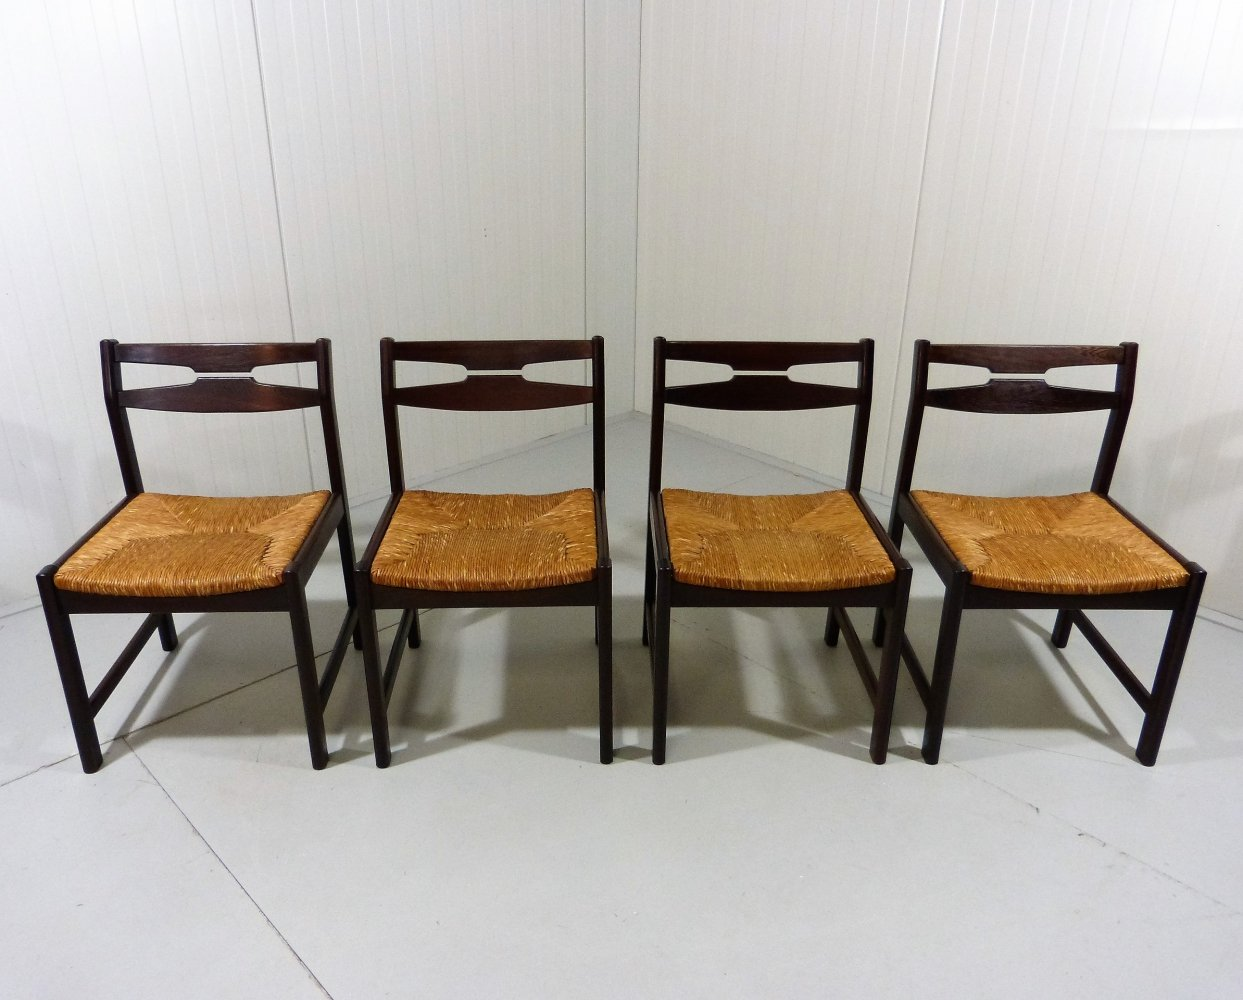 Set of 4 wenge wooden dining chairs, 1960